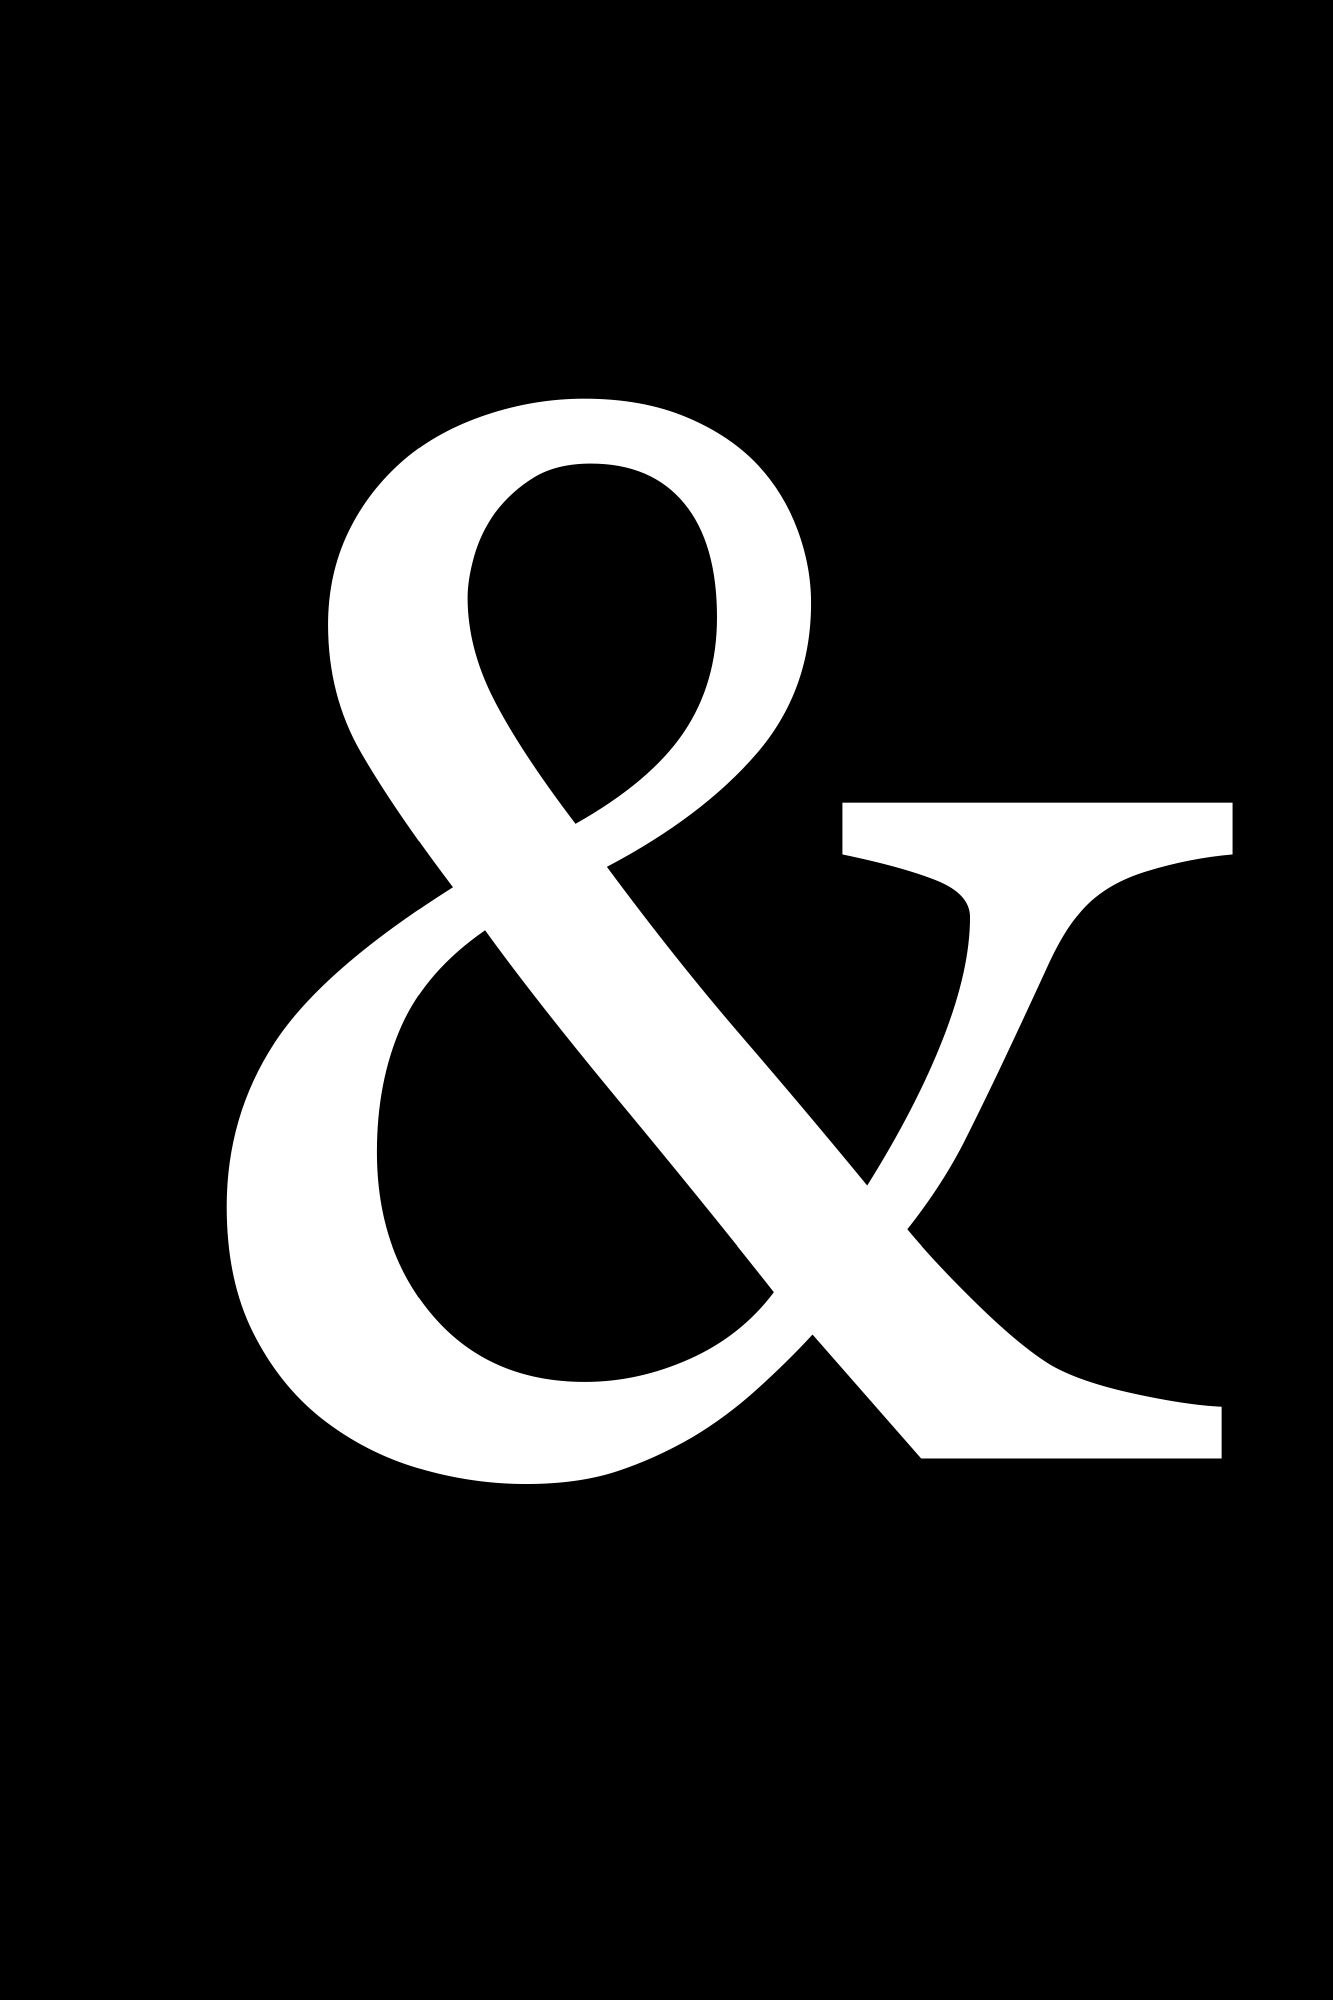 Free Black And White Printables | Art | Black, White Photography - Free Printable Ampersand Symbol